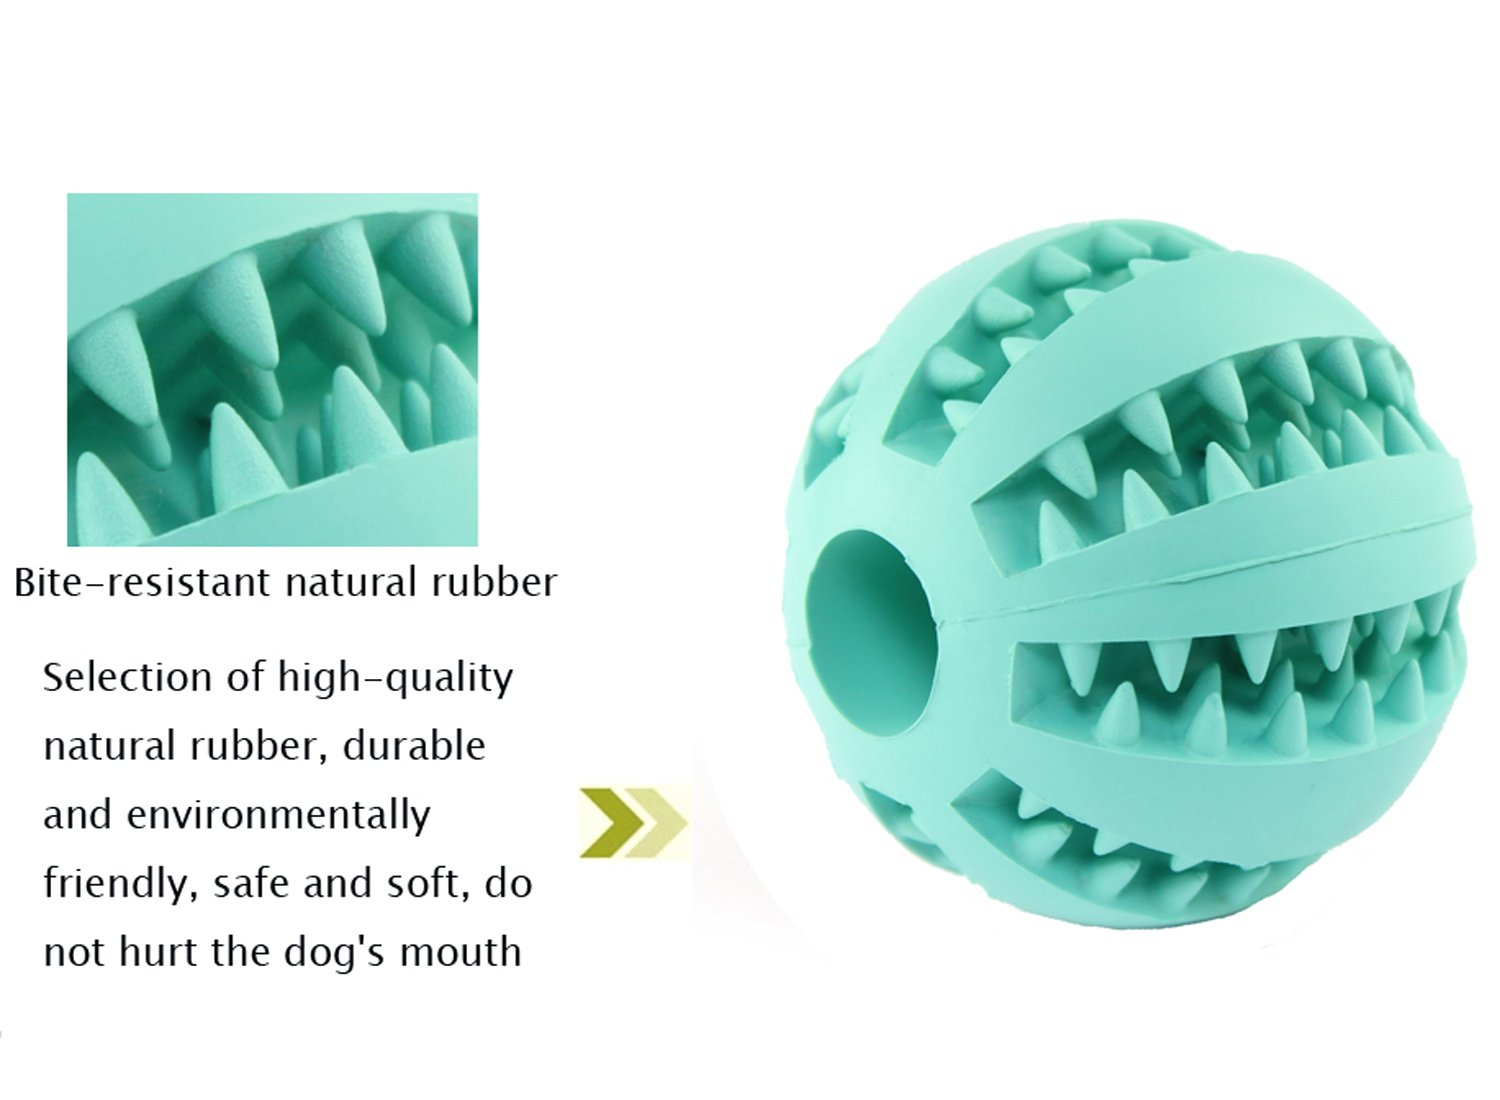 pet supplies wangstar dual pet toy ball for dogs dog toy bite